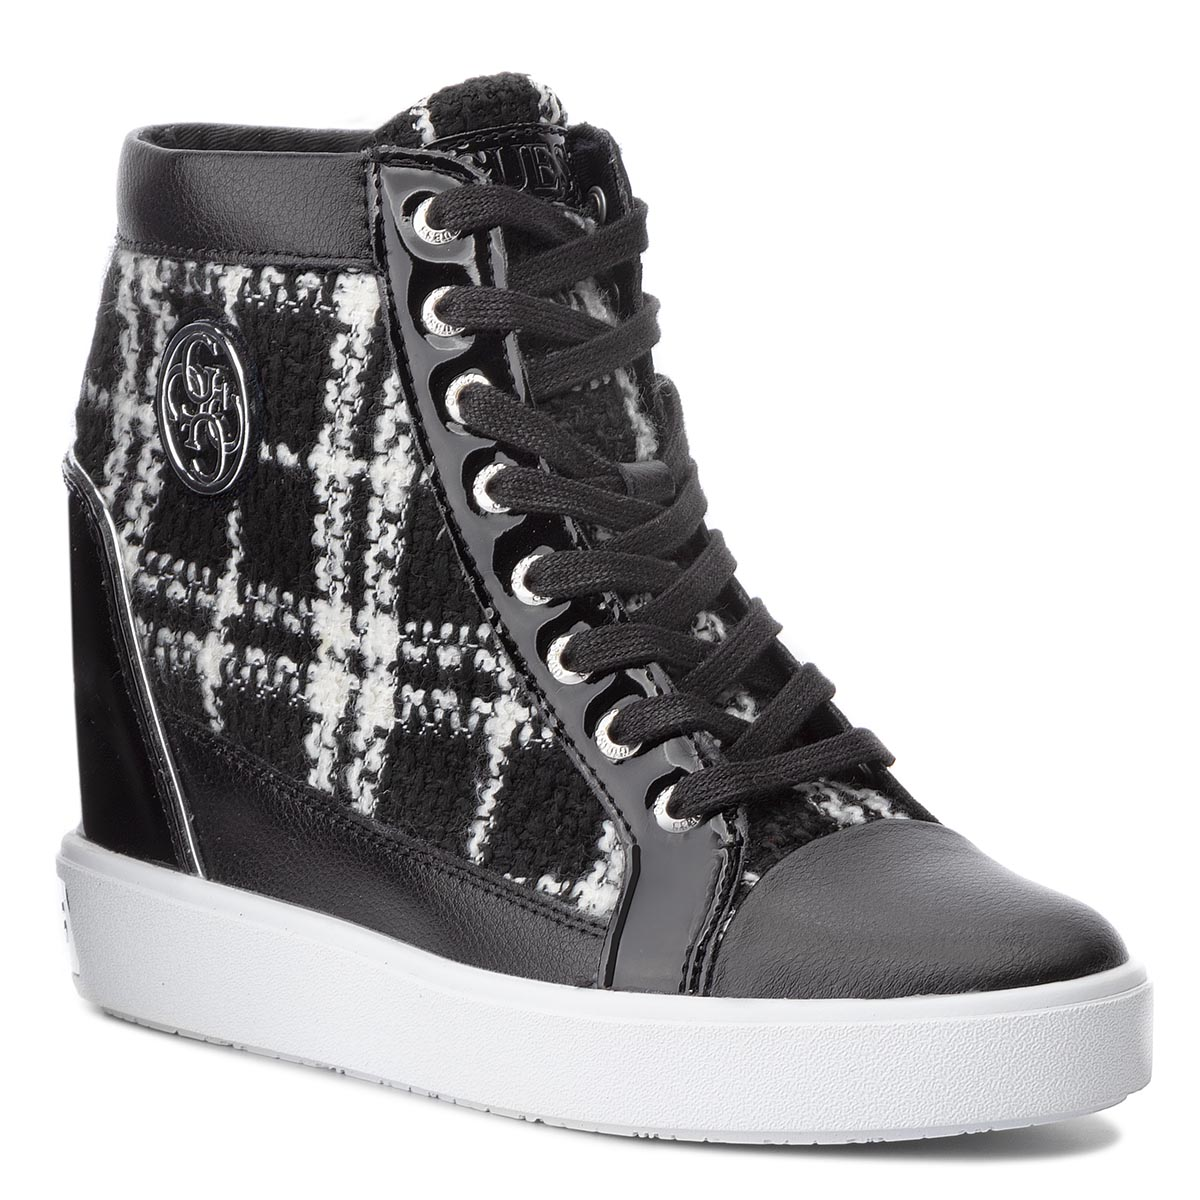 Sneakers GUESS - FLFRR3 FAB12 WHIBL